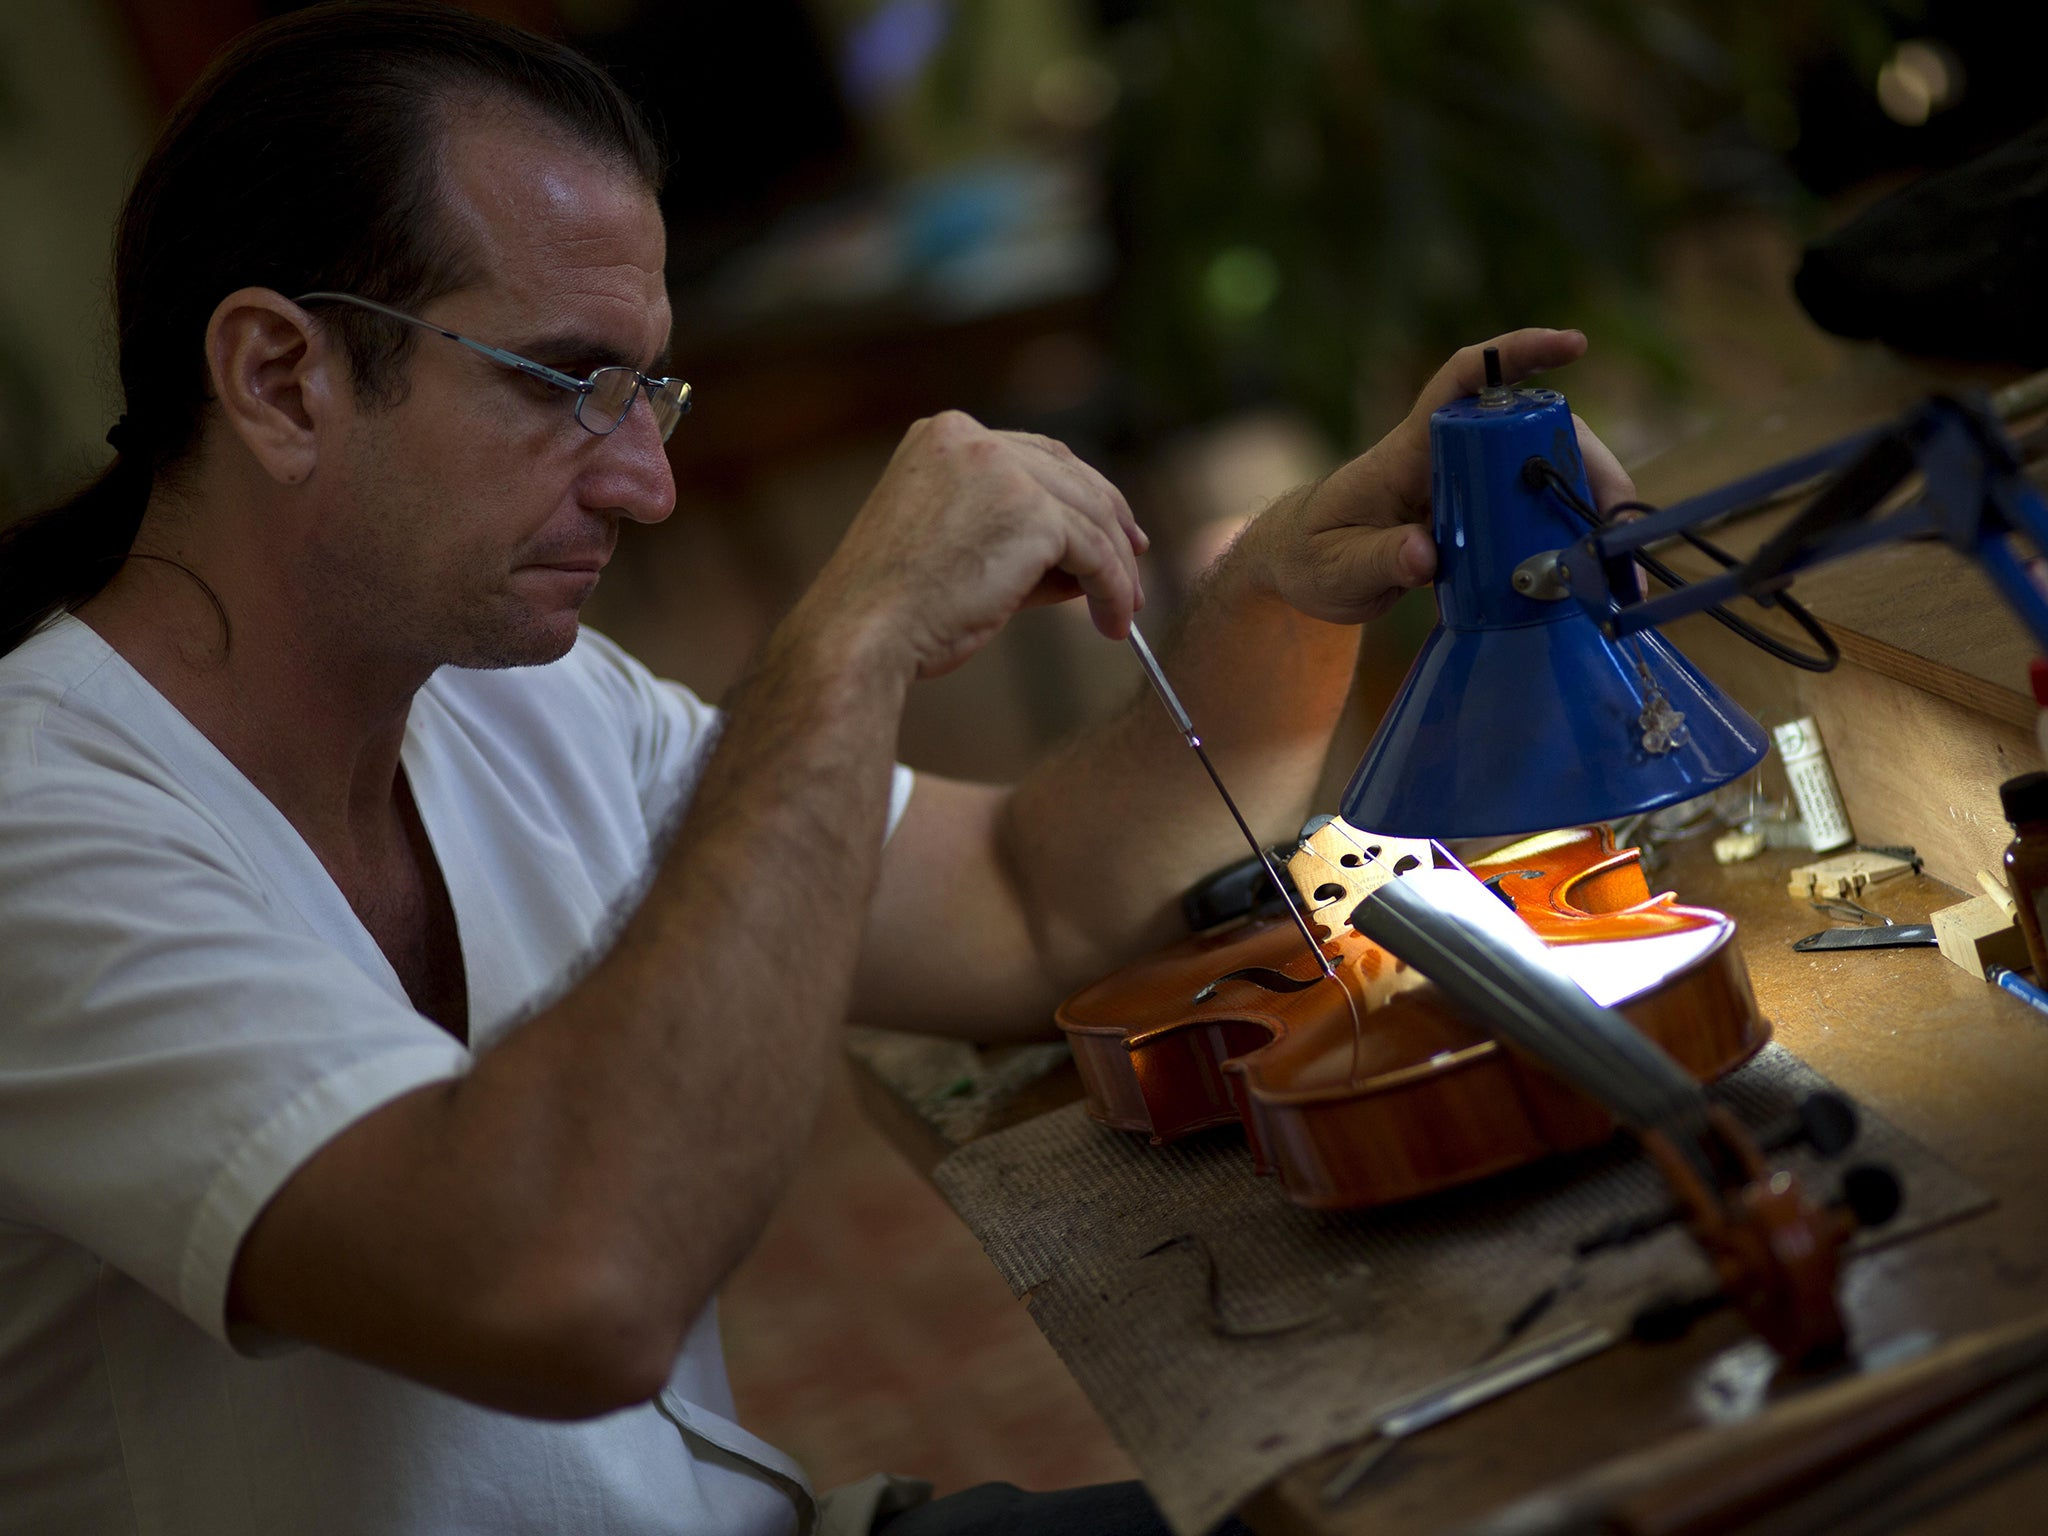 Andres Martinez repairs a viola at his workshop in Havana AP